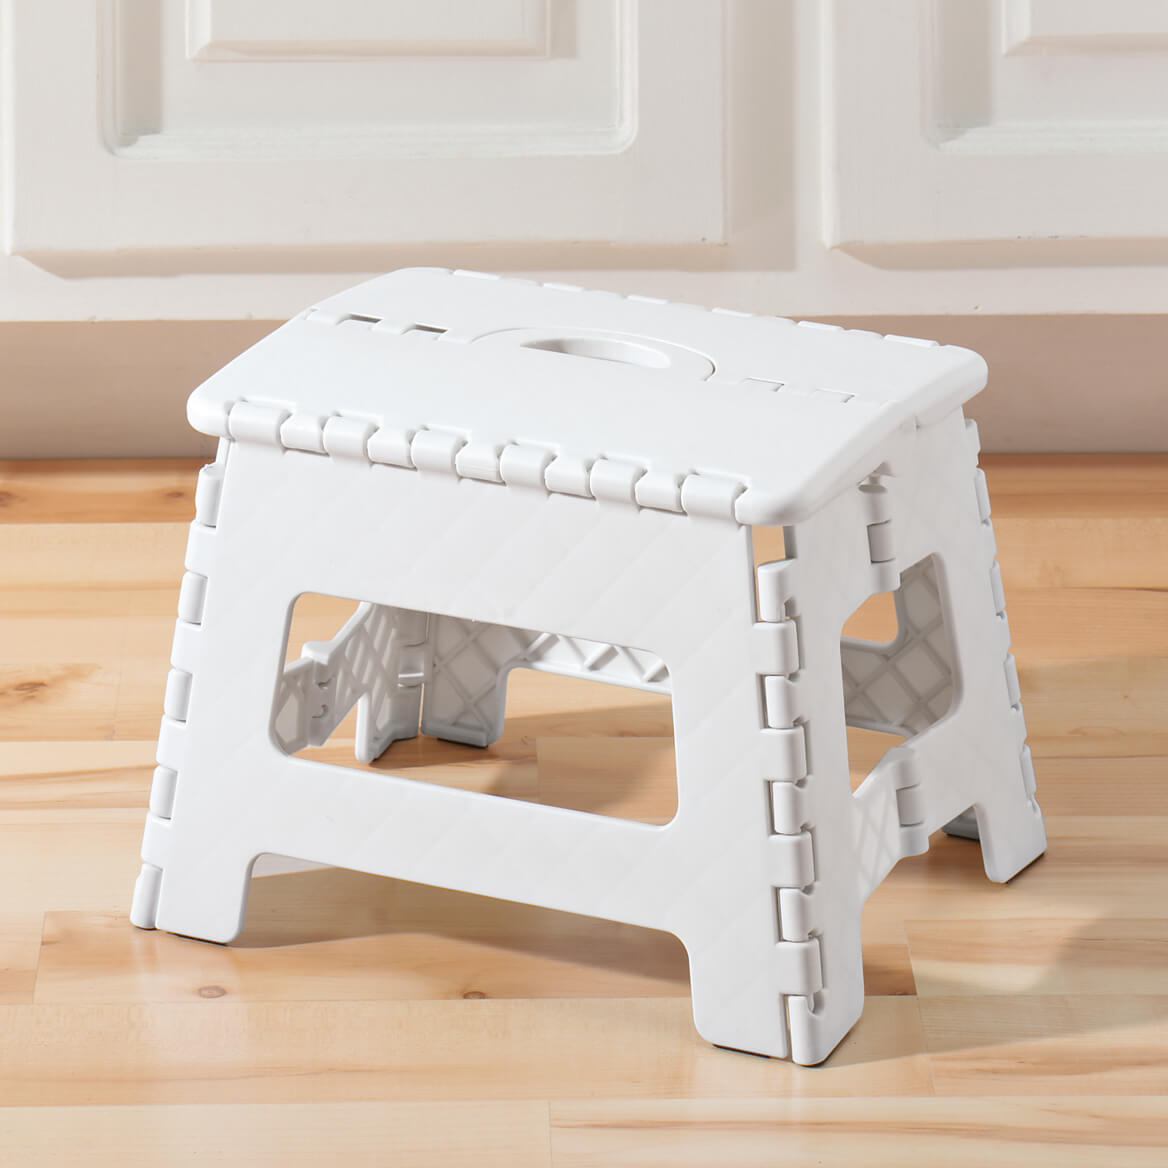 Super Folding Step Stool Ocoug Best Dining Table And Chair Ideas Images Ocougorg